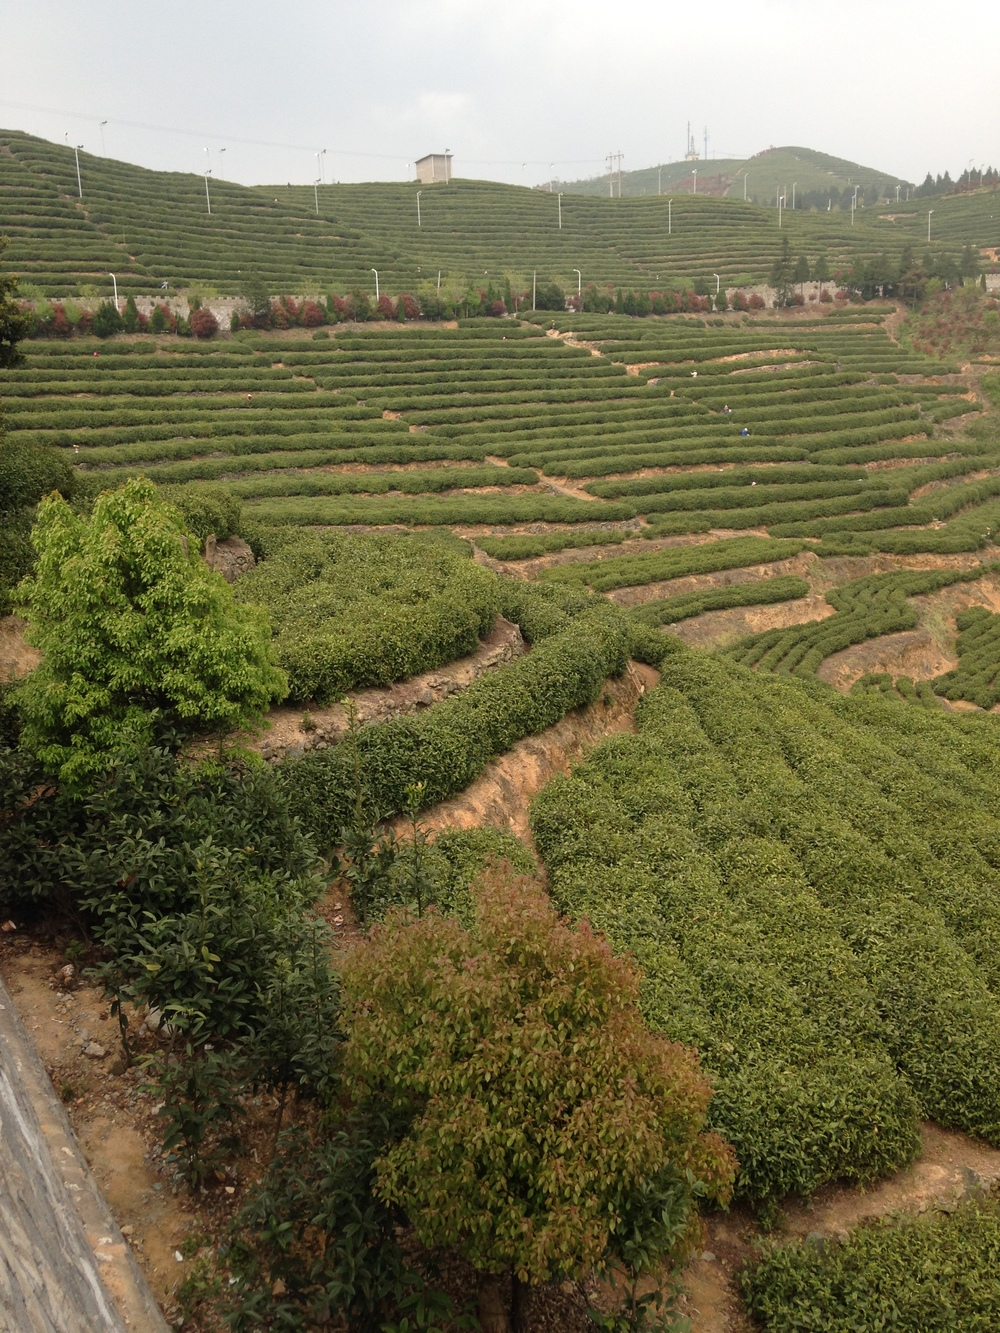 Last order of business during the visit: a steep climb to Yangyan Mountain tea farm,